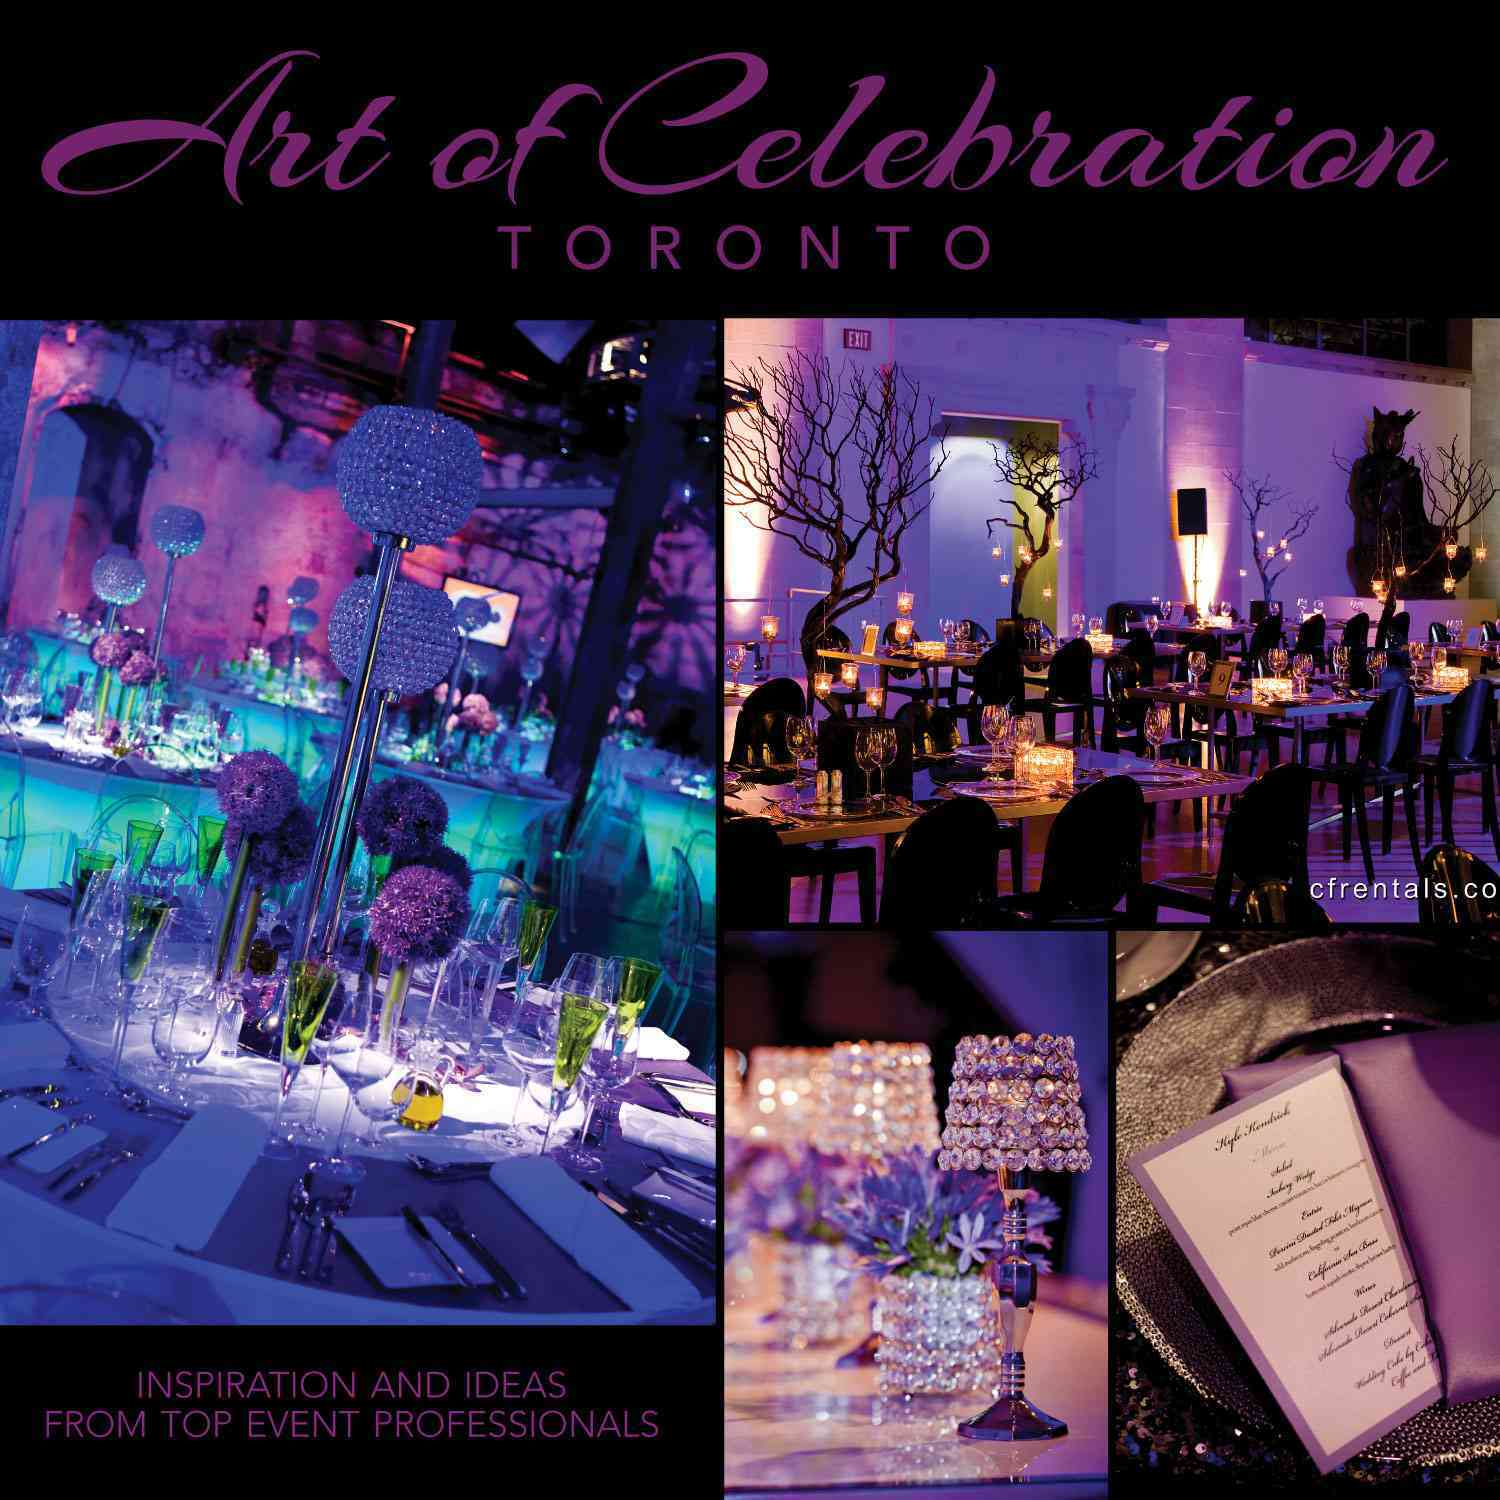 Art of Celebration Toronto: Inspiration and Ideas from Top Event Professionals (Hardcover)